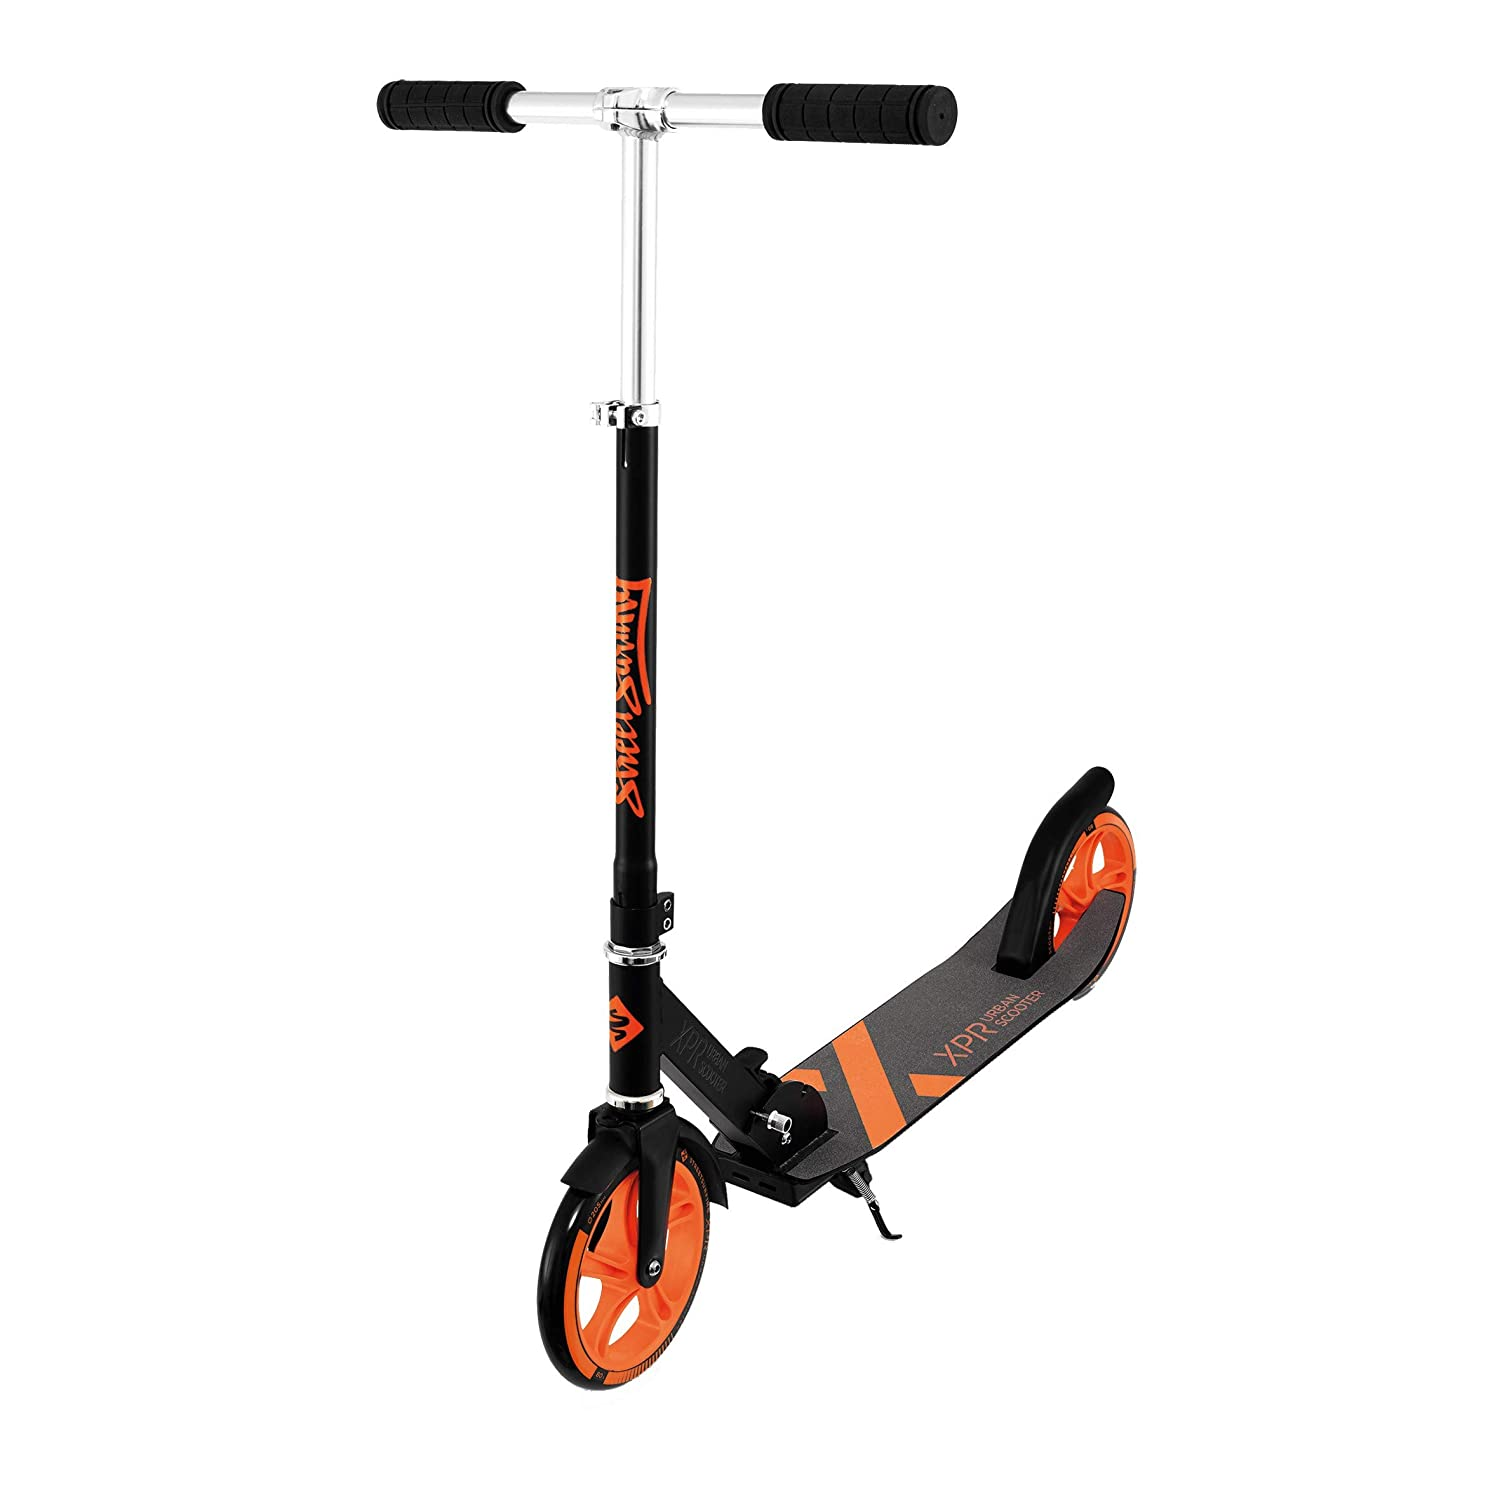 Amazon.com: Street Surfing Urban XPR Road Kick Scooter: Toys ...